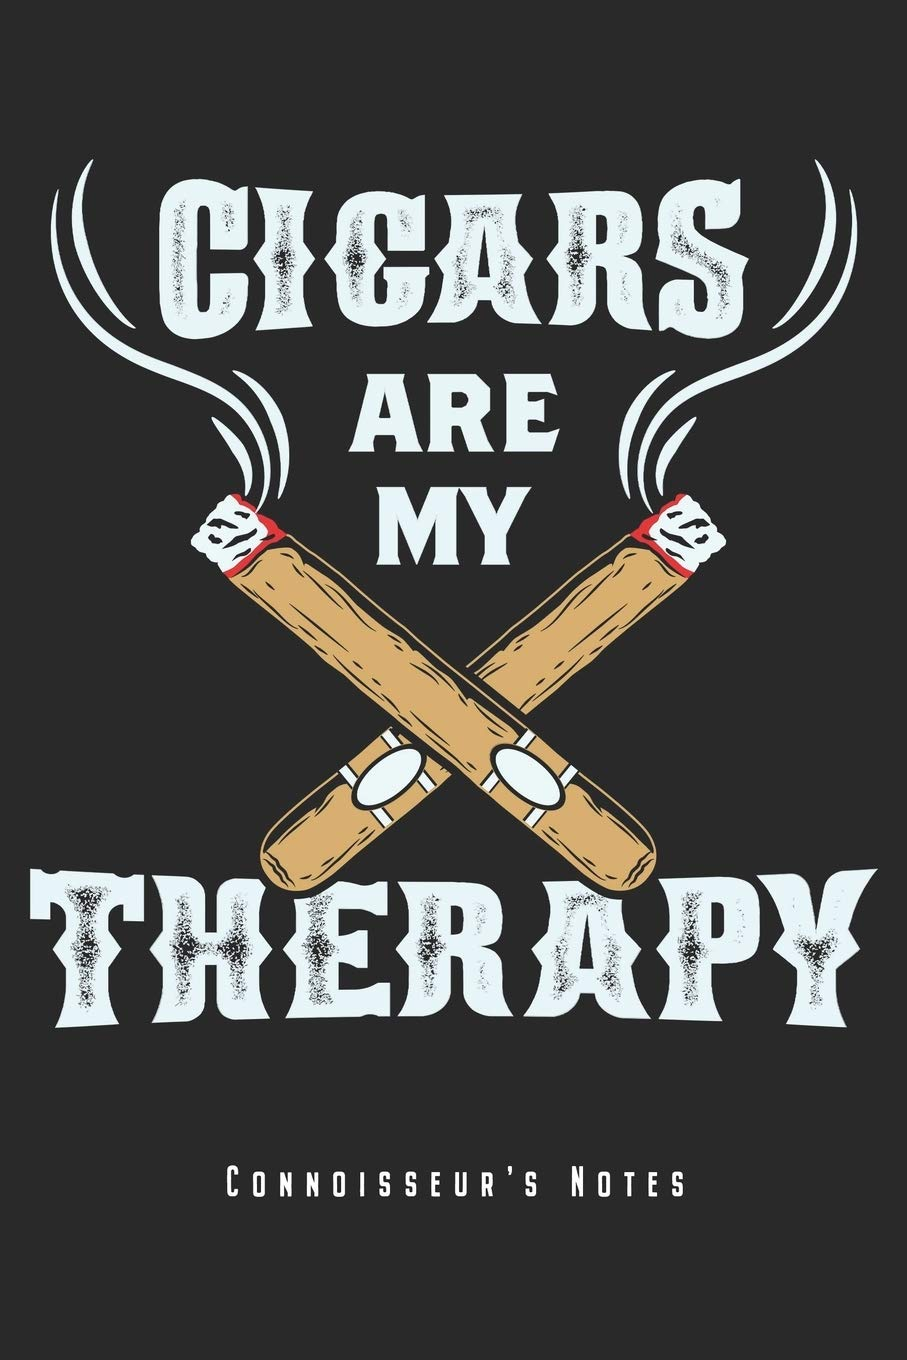 Amazon Com Cigars Are My Therapy Connoisseur S Notes Cigar Smoking Notebook Journal Planner Gift For Cuban Cigar Lovers Smoker 6 X 9 120 Pages Lined Perfect Gift Idea For Birthday